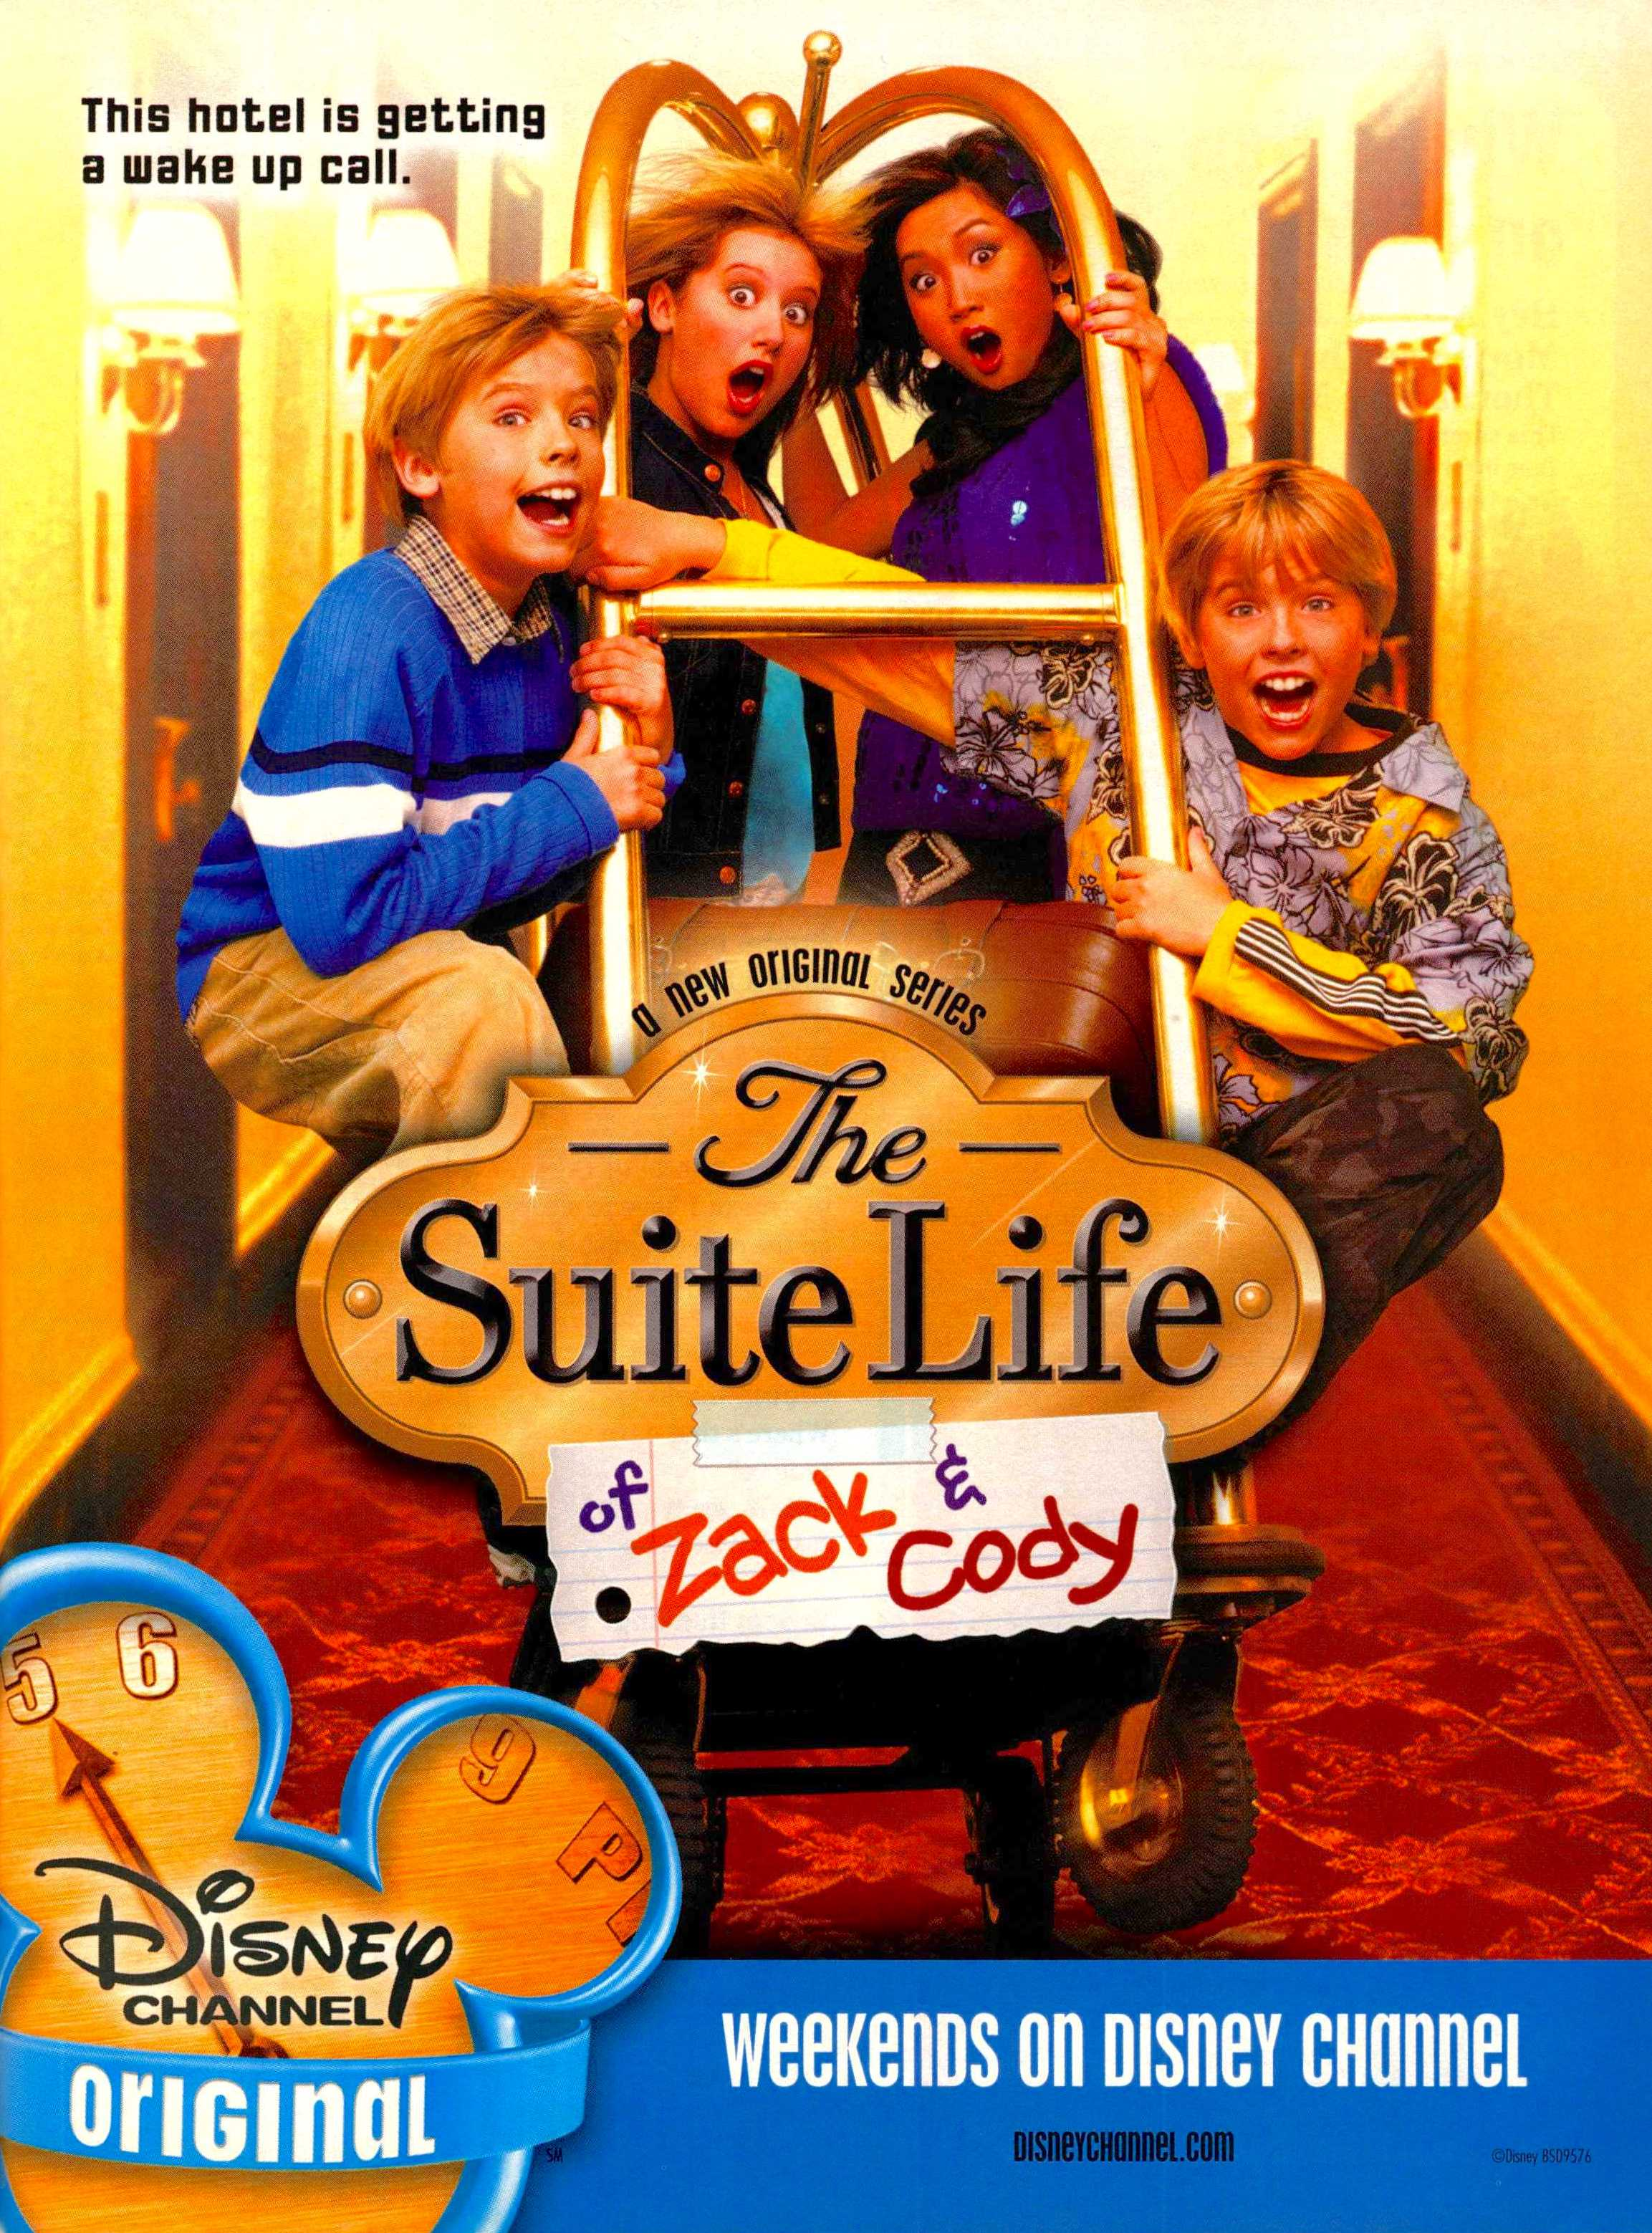 The Suite Life of Zack & Cody